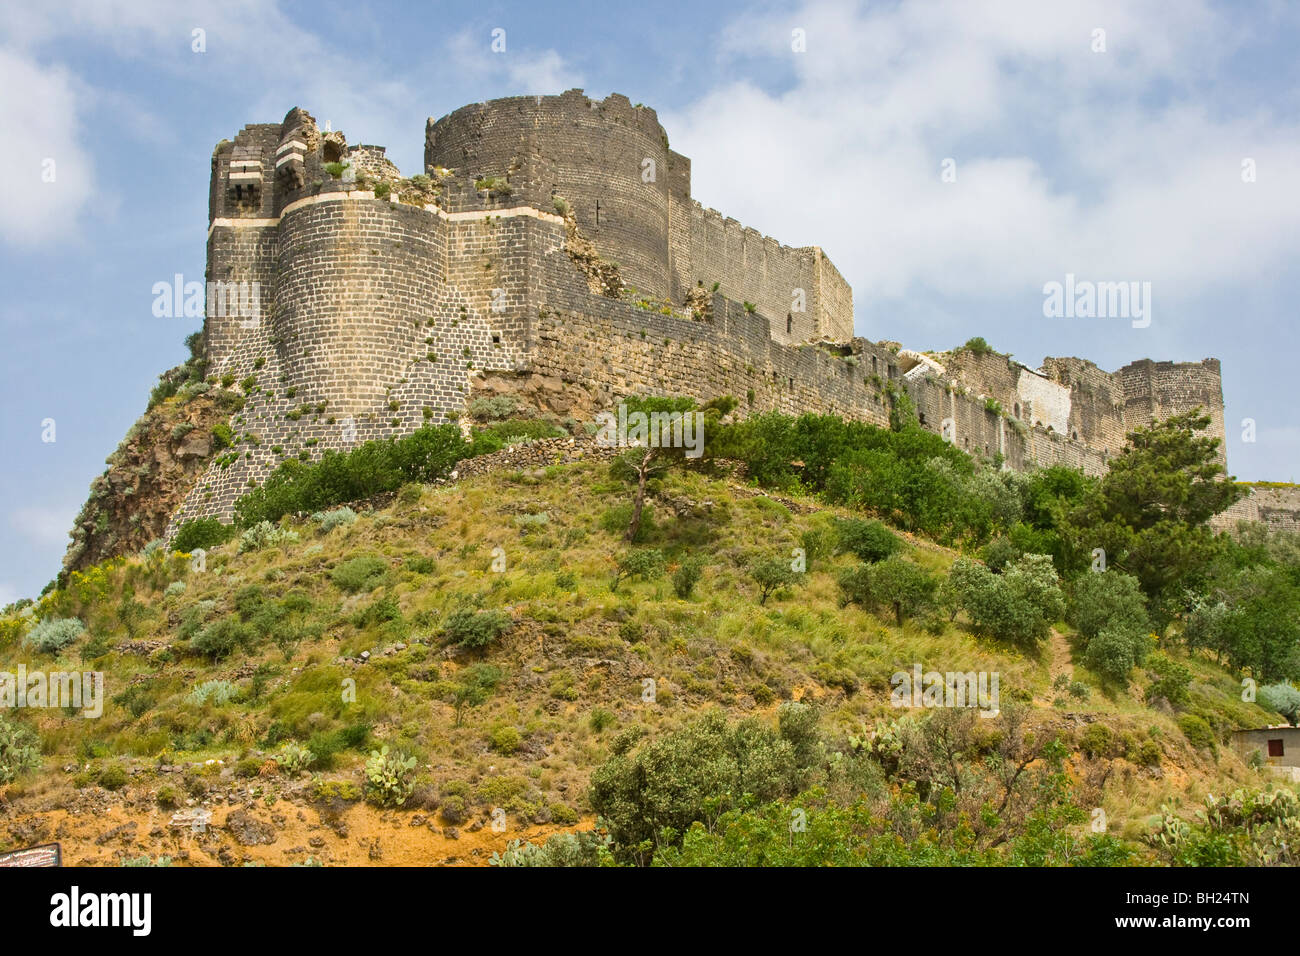 Qalaat Marqab Crusader Castle in Syria Stock Photo